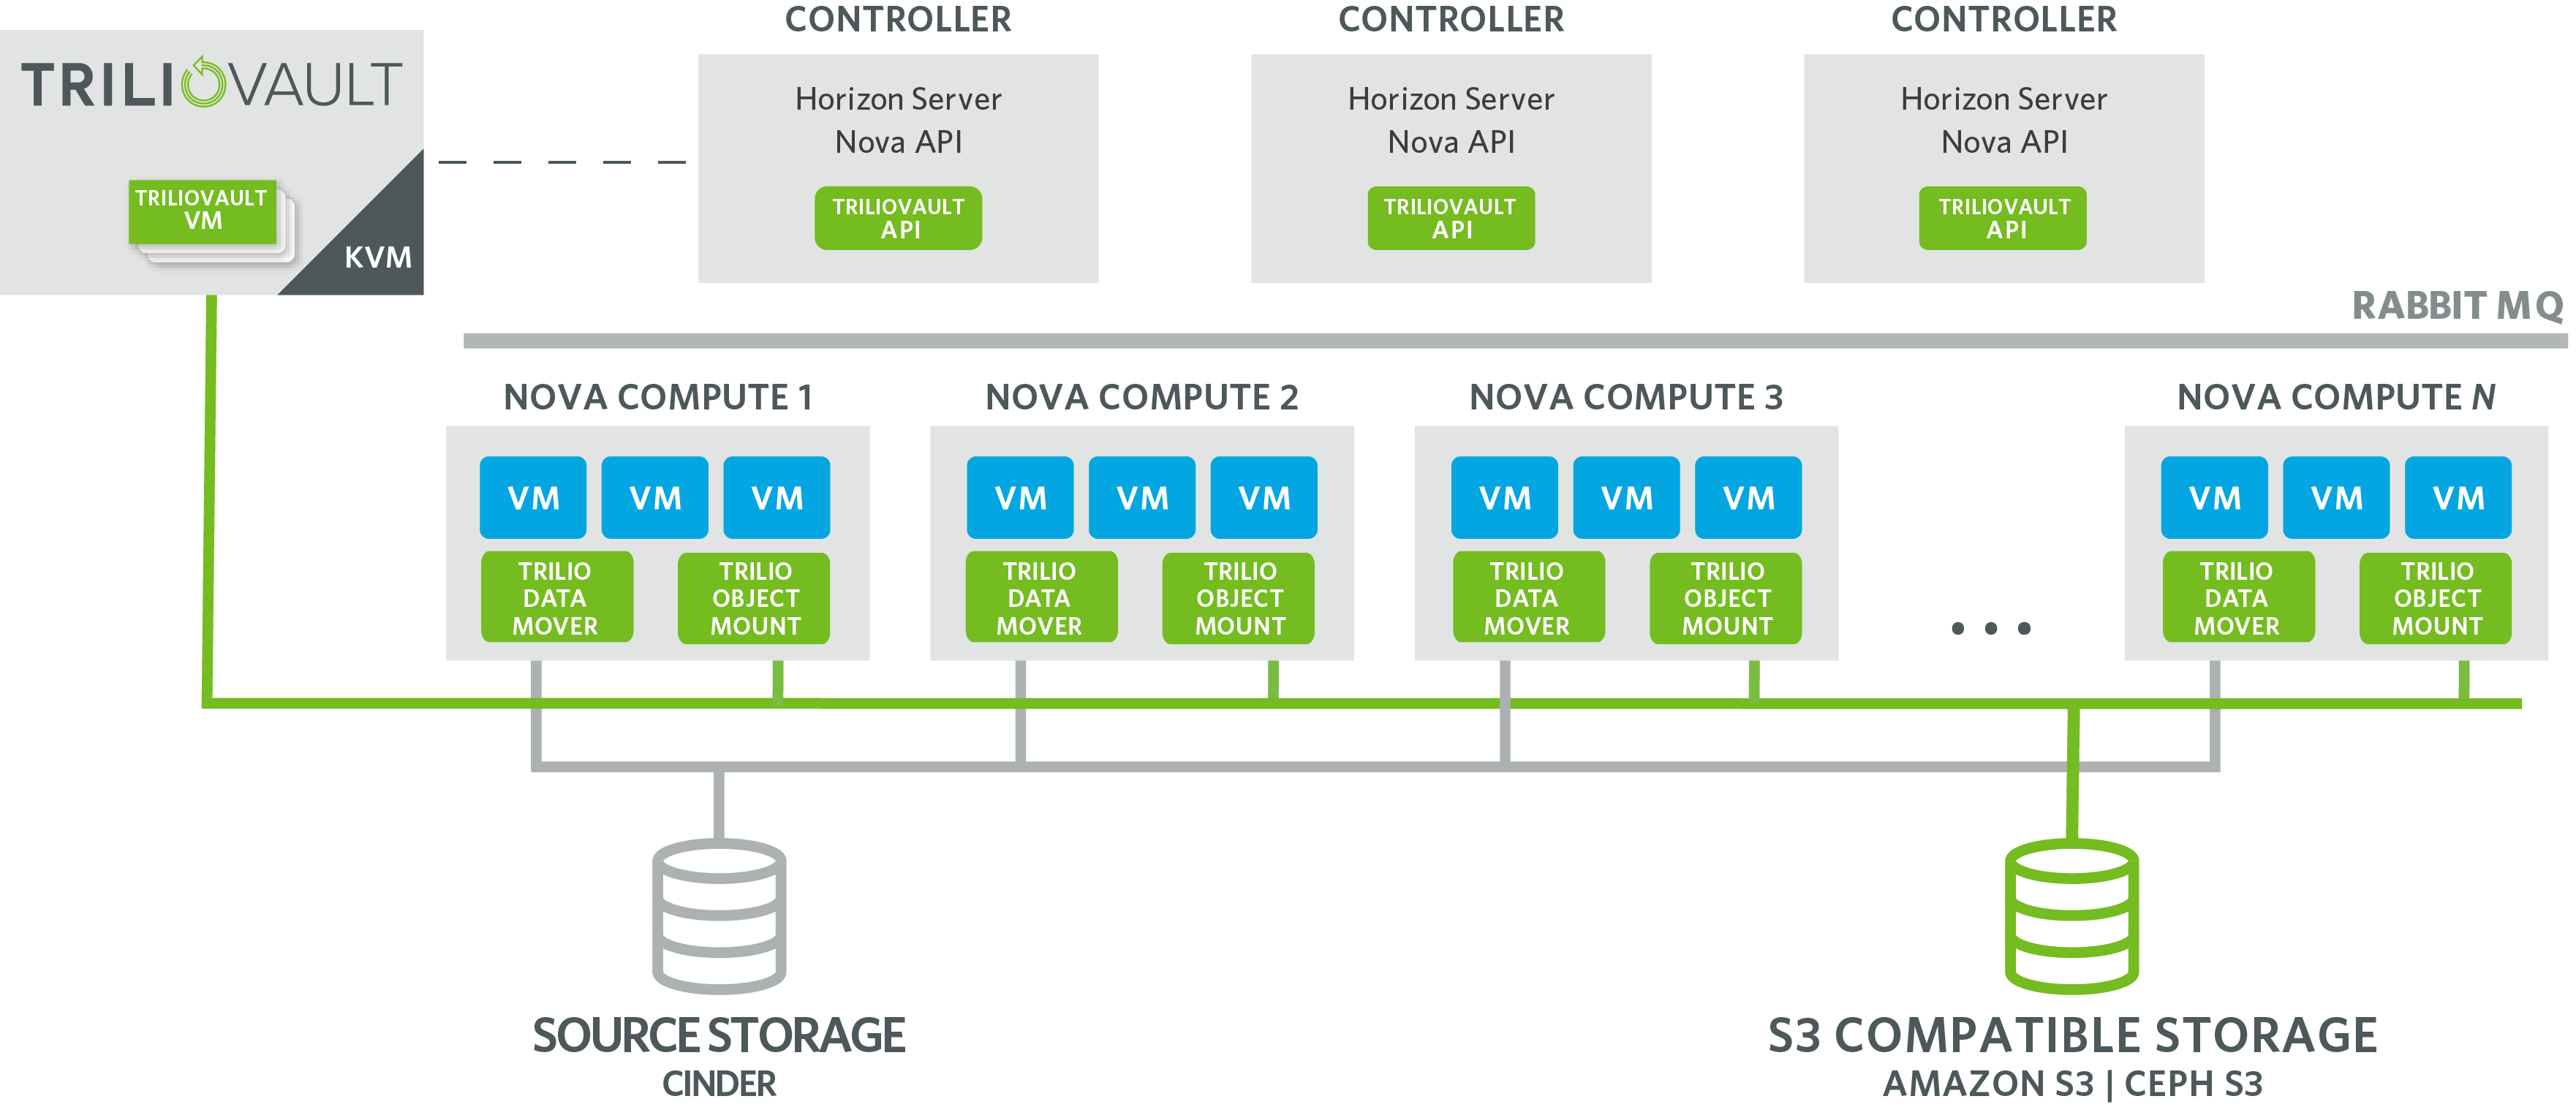 TrilioVault with S3 cloud storage as a Back-end